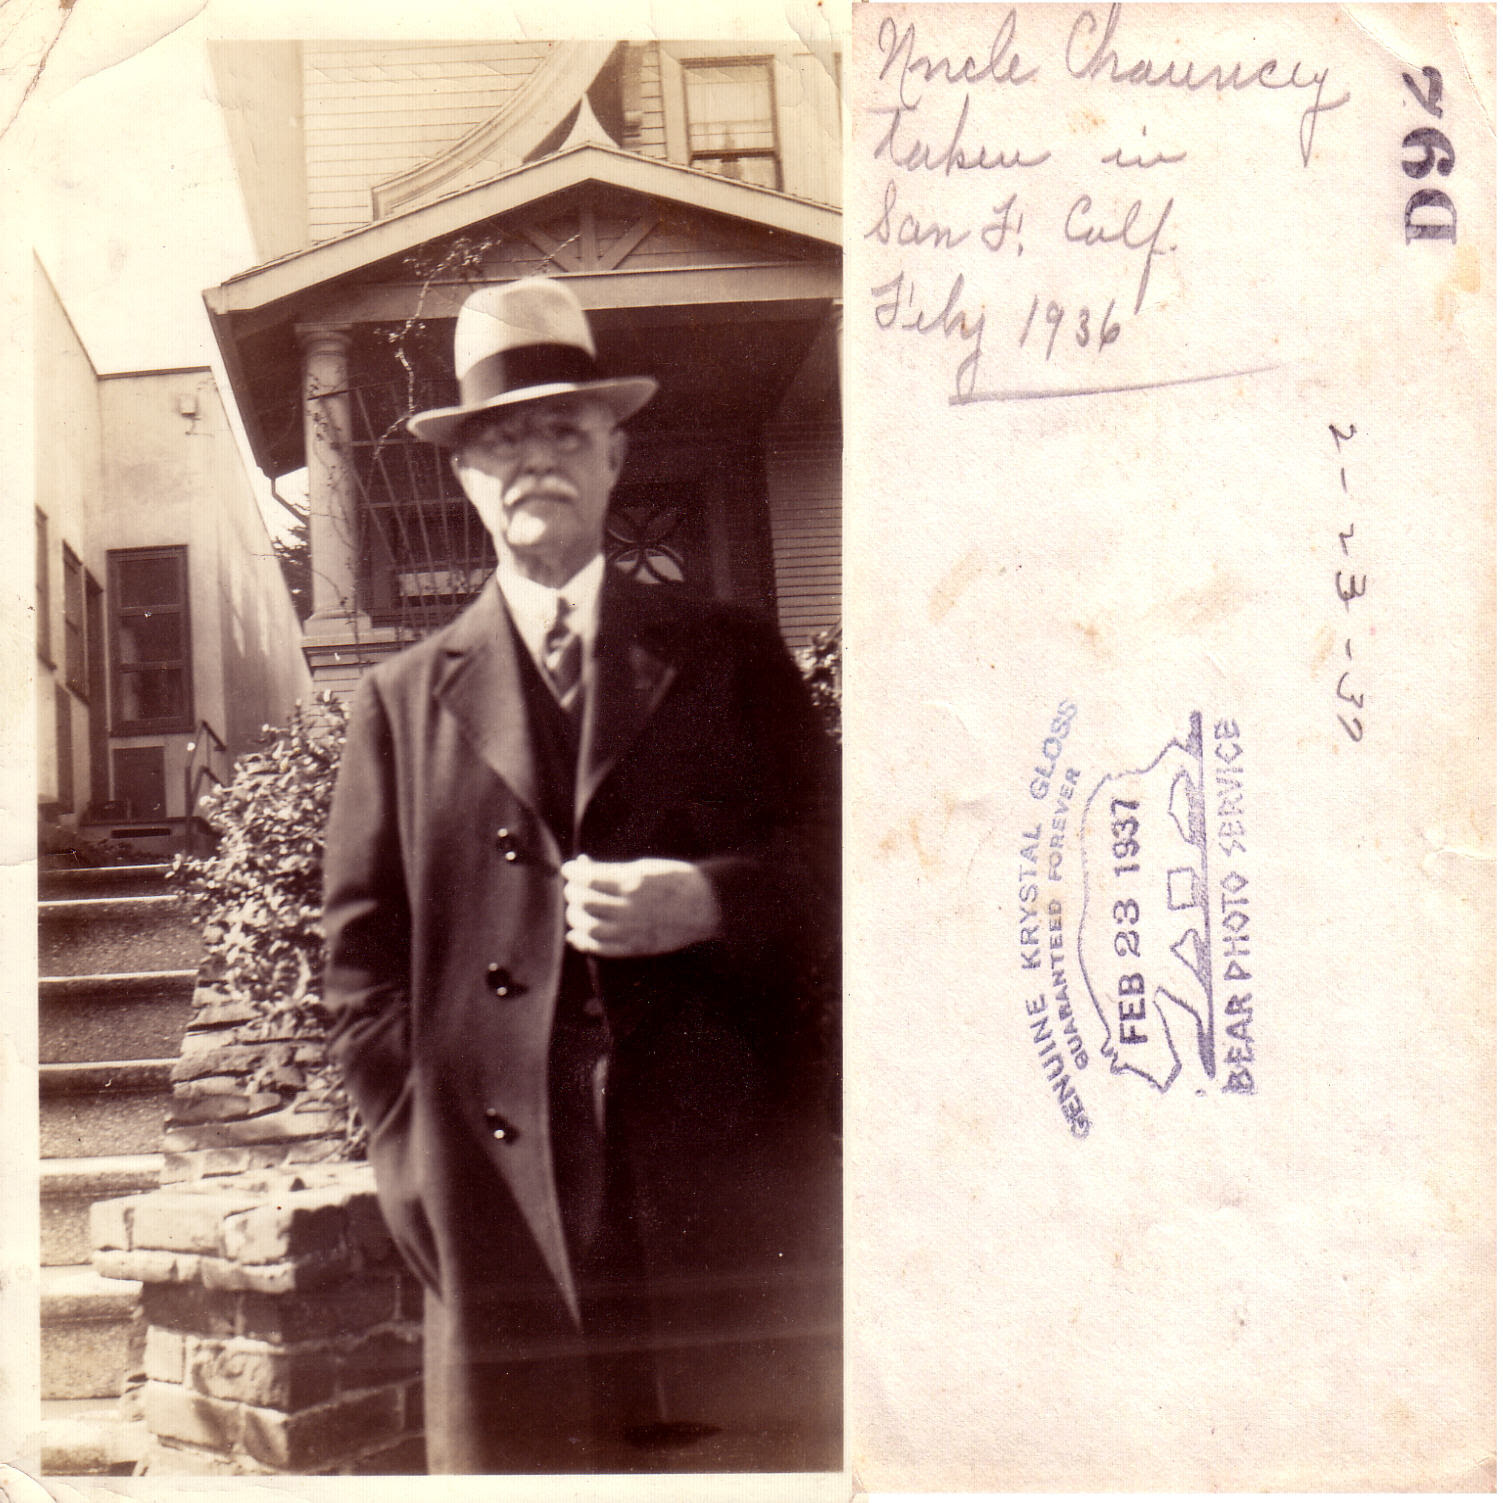 Uncle Chauncy July 1936